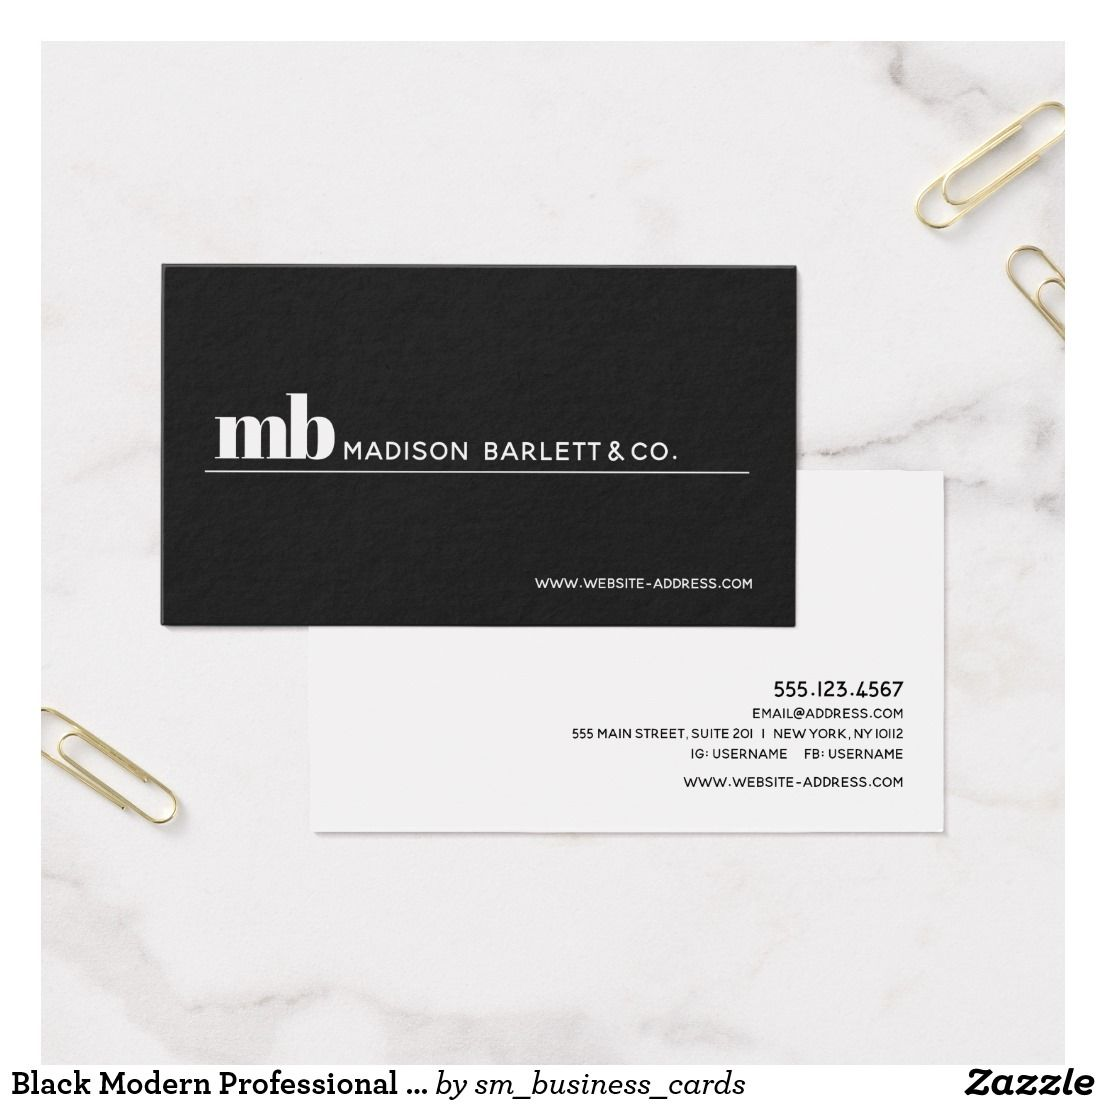 Black Modern Professional Monogram Business Card | Business cards ...